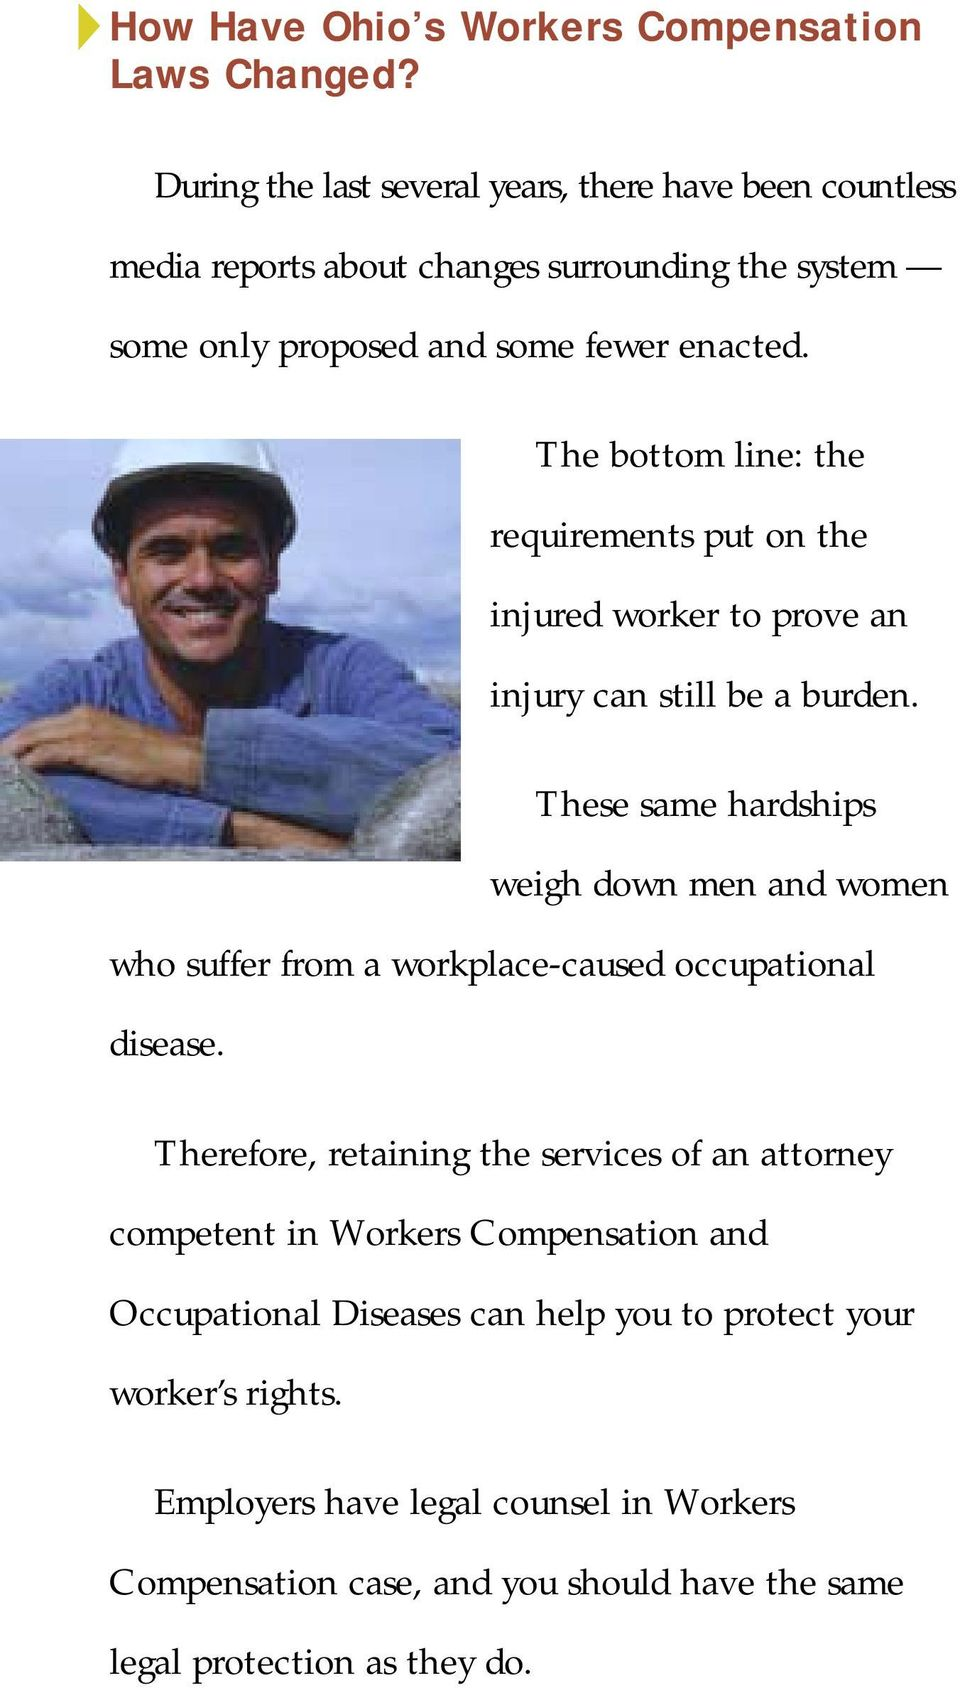 The bottom line: the requirements put on the injured worker to prove an injury can still be a burden.